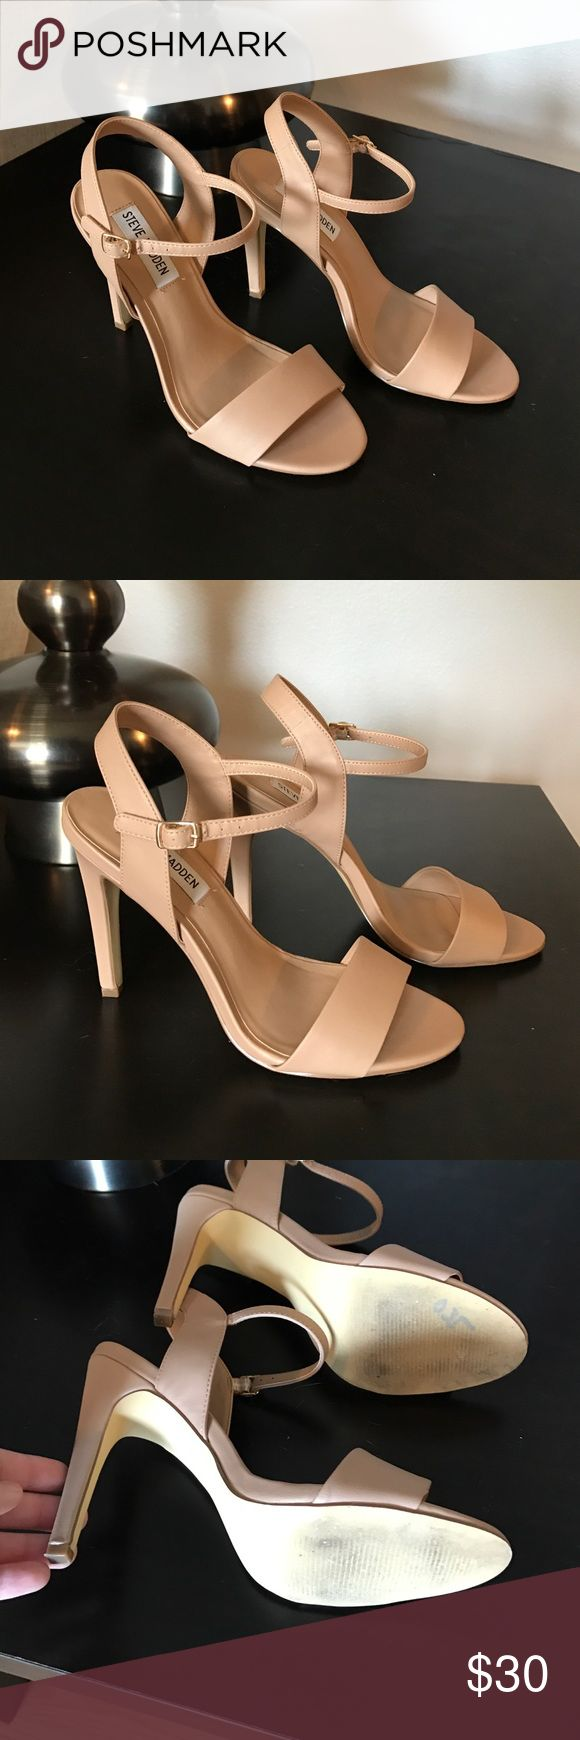 Practically new Steve Madden heels Only worn once, excellent condition. Bought these because I wanted a Stuart Weitzman nudist dupe but then I finally bought some. Practically brand new, stored to prevent any damage to the structure of the shoe. Excellent nude heels. Steve Madden Shoes Heels